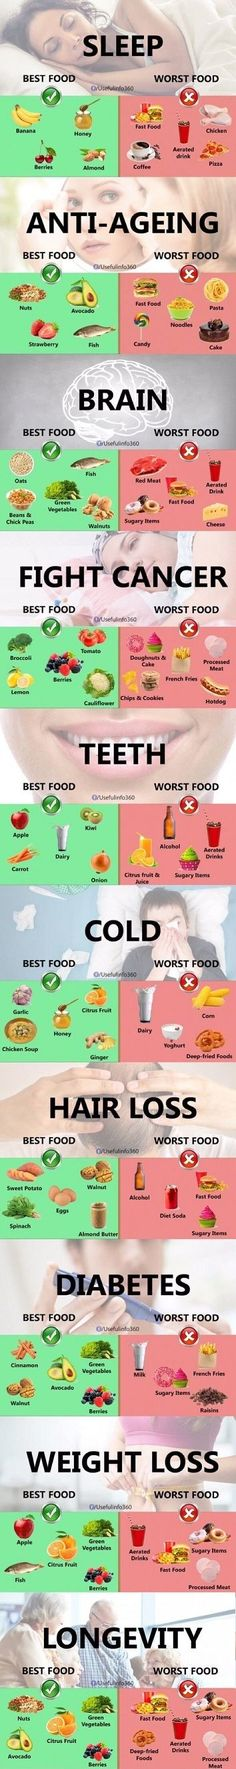 Best and Worst FOODS for Healthy Life